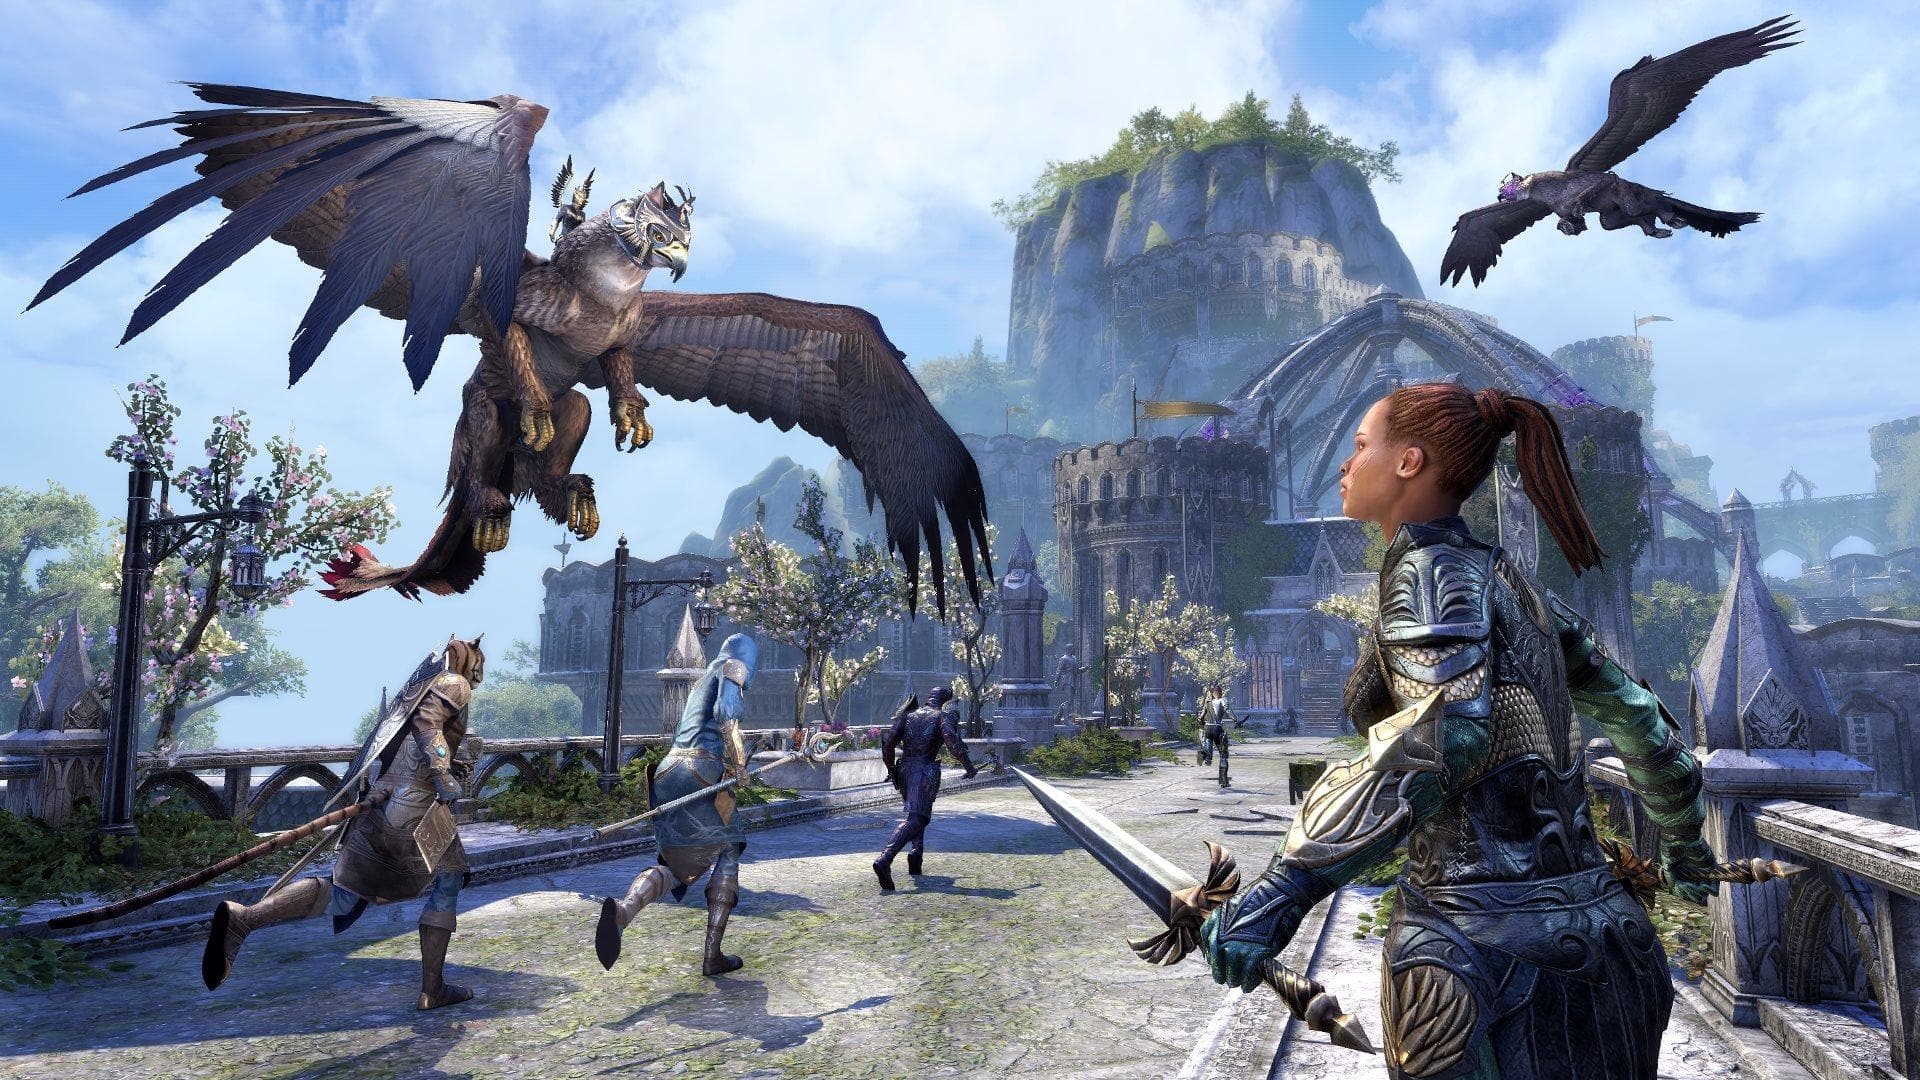 The Elder Scrolls Online To Feature Necromancer Class; One Of The Game's Most Exciting Characters